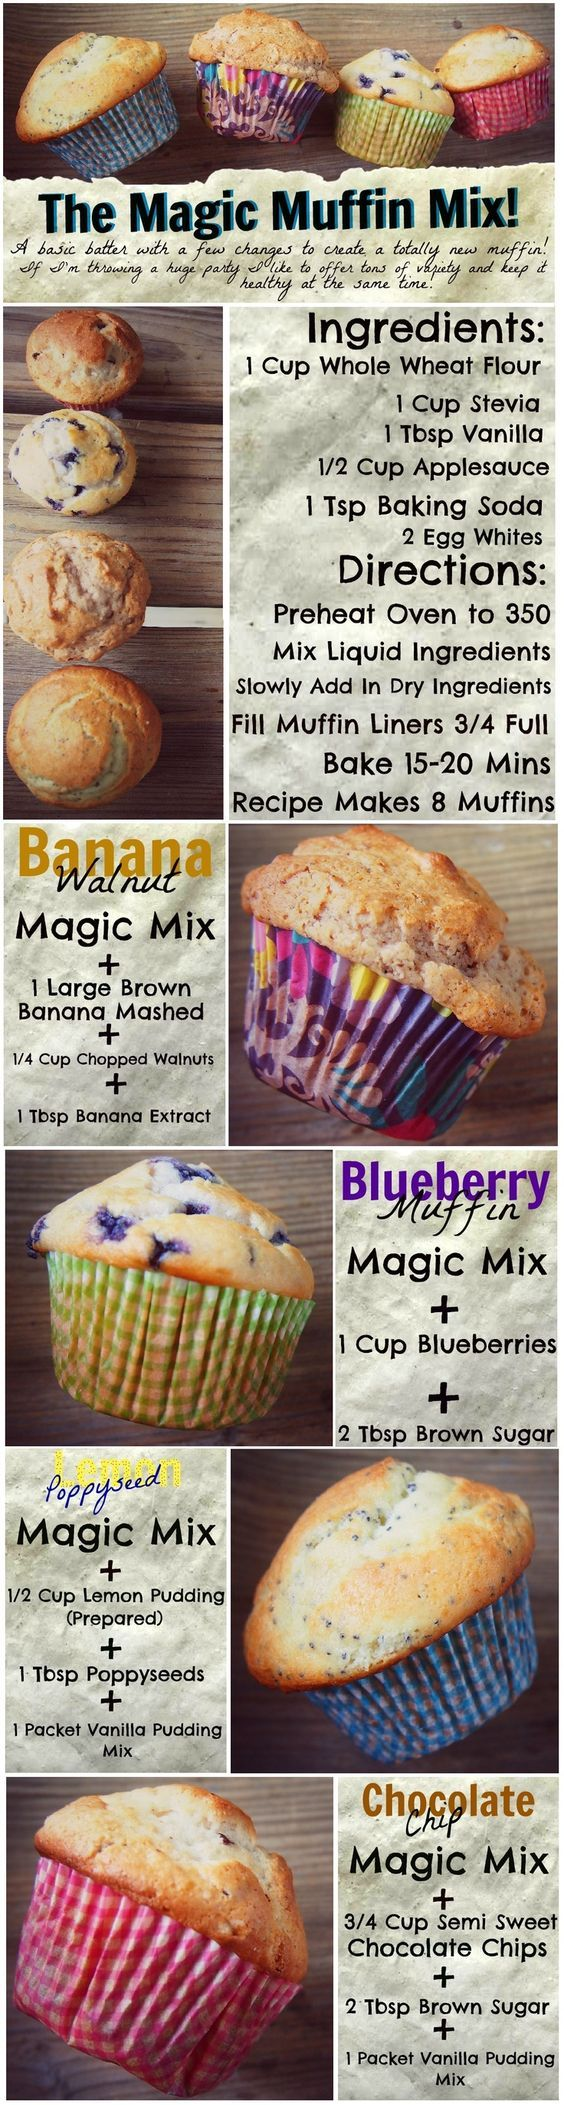 The Magic Muffin Mix! 1 Recipe for 4 Different Muffins. Replacement: Honey for stevia..